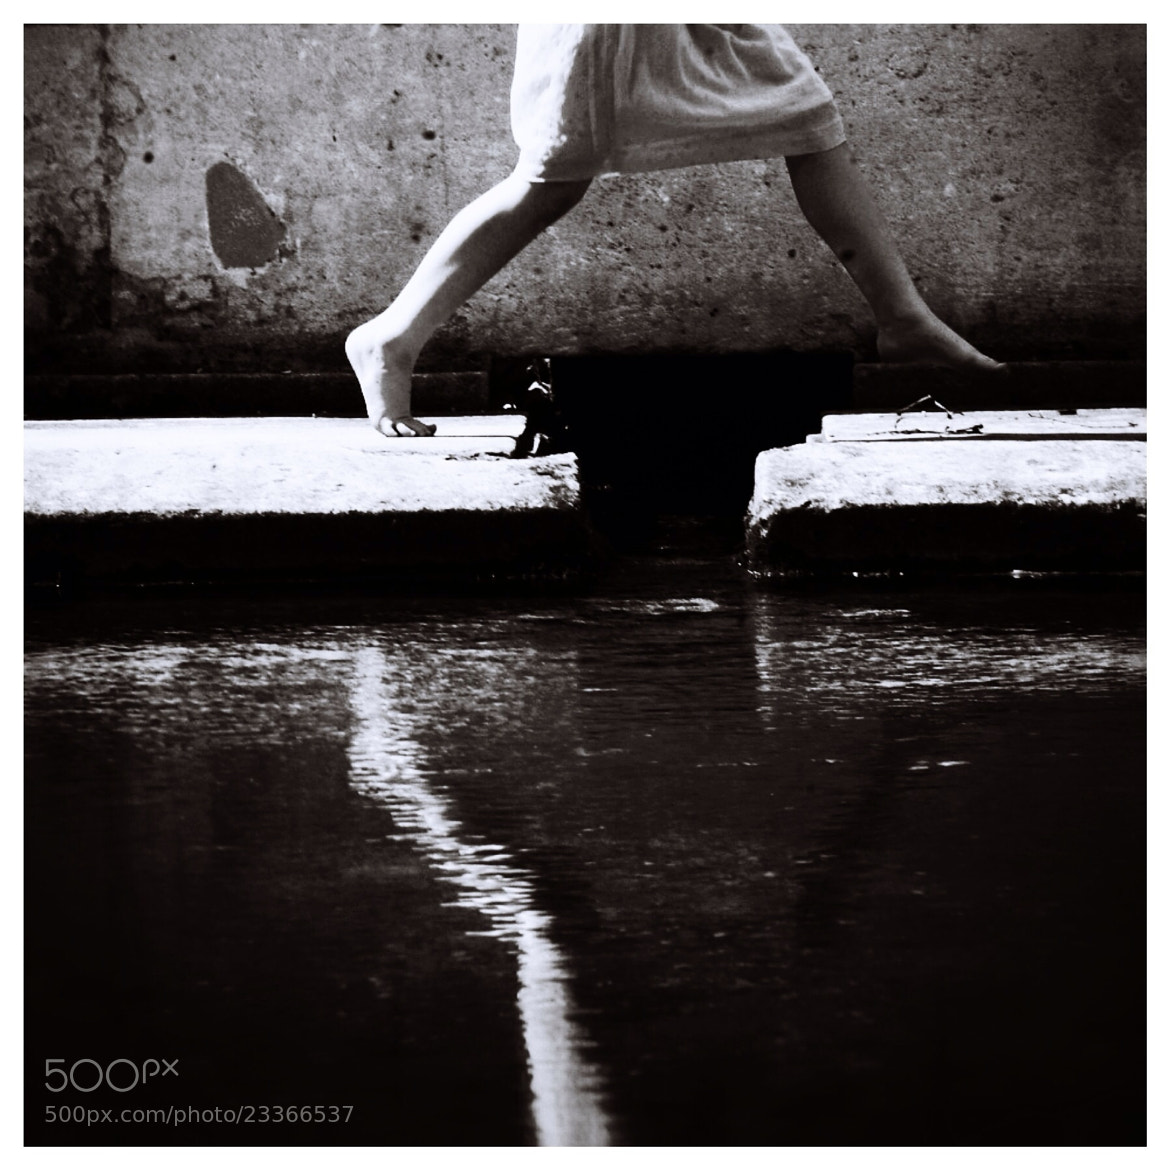 Photograph Untitled by Malmoux Marie eve on 500px